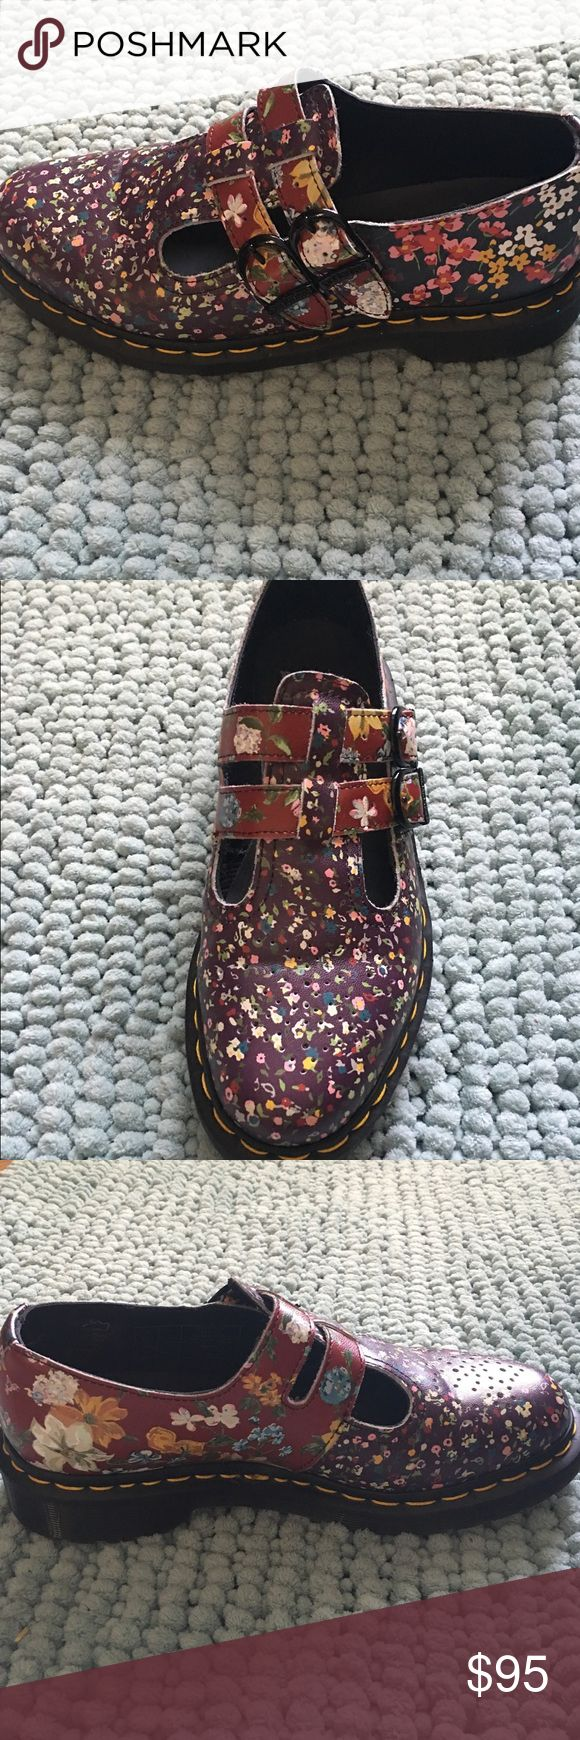 Price drop! Dr. Martens Floral Mary Janes US Wmn 7 Worn twice! They don't fit me as well as I'd like, and unfortunately I feel I should give them a new home. They are SO cute! Still for sale for $125 on Dr. Martens website. Size Women's US 8. Very minimal, normal wear. Dr. Martens Shoes Combat & Moto Boots